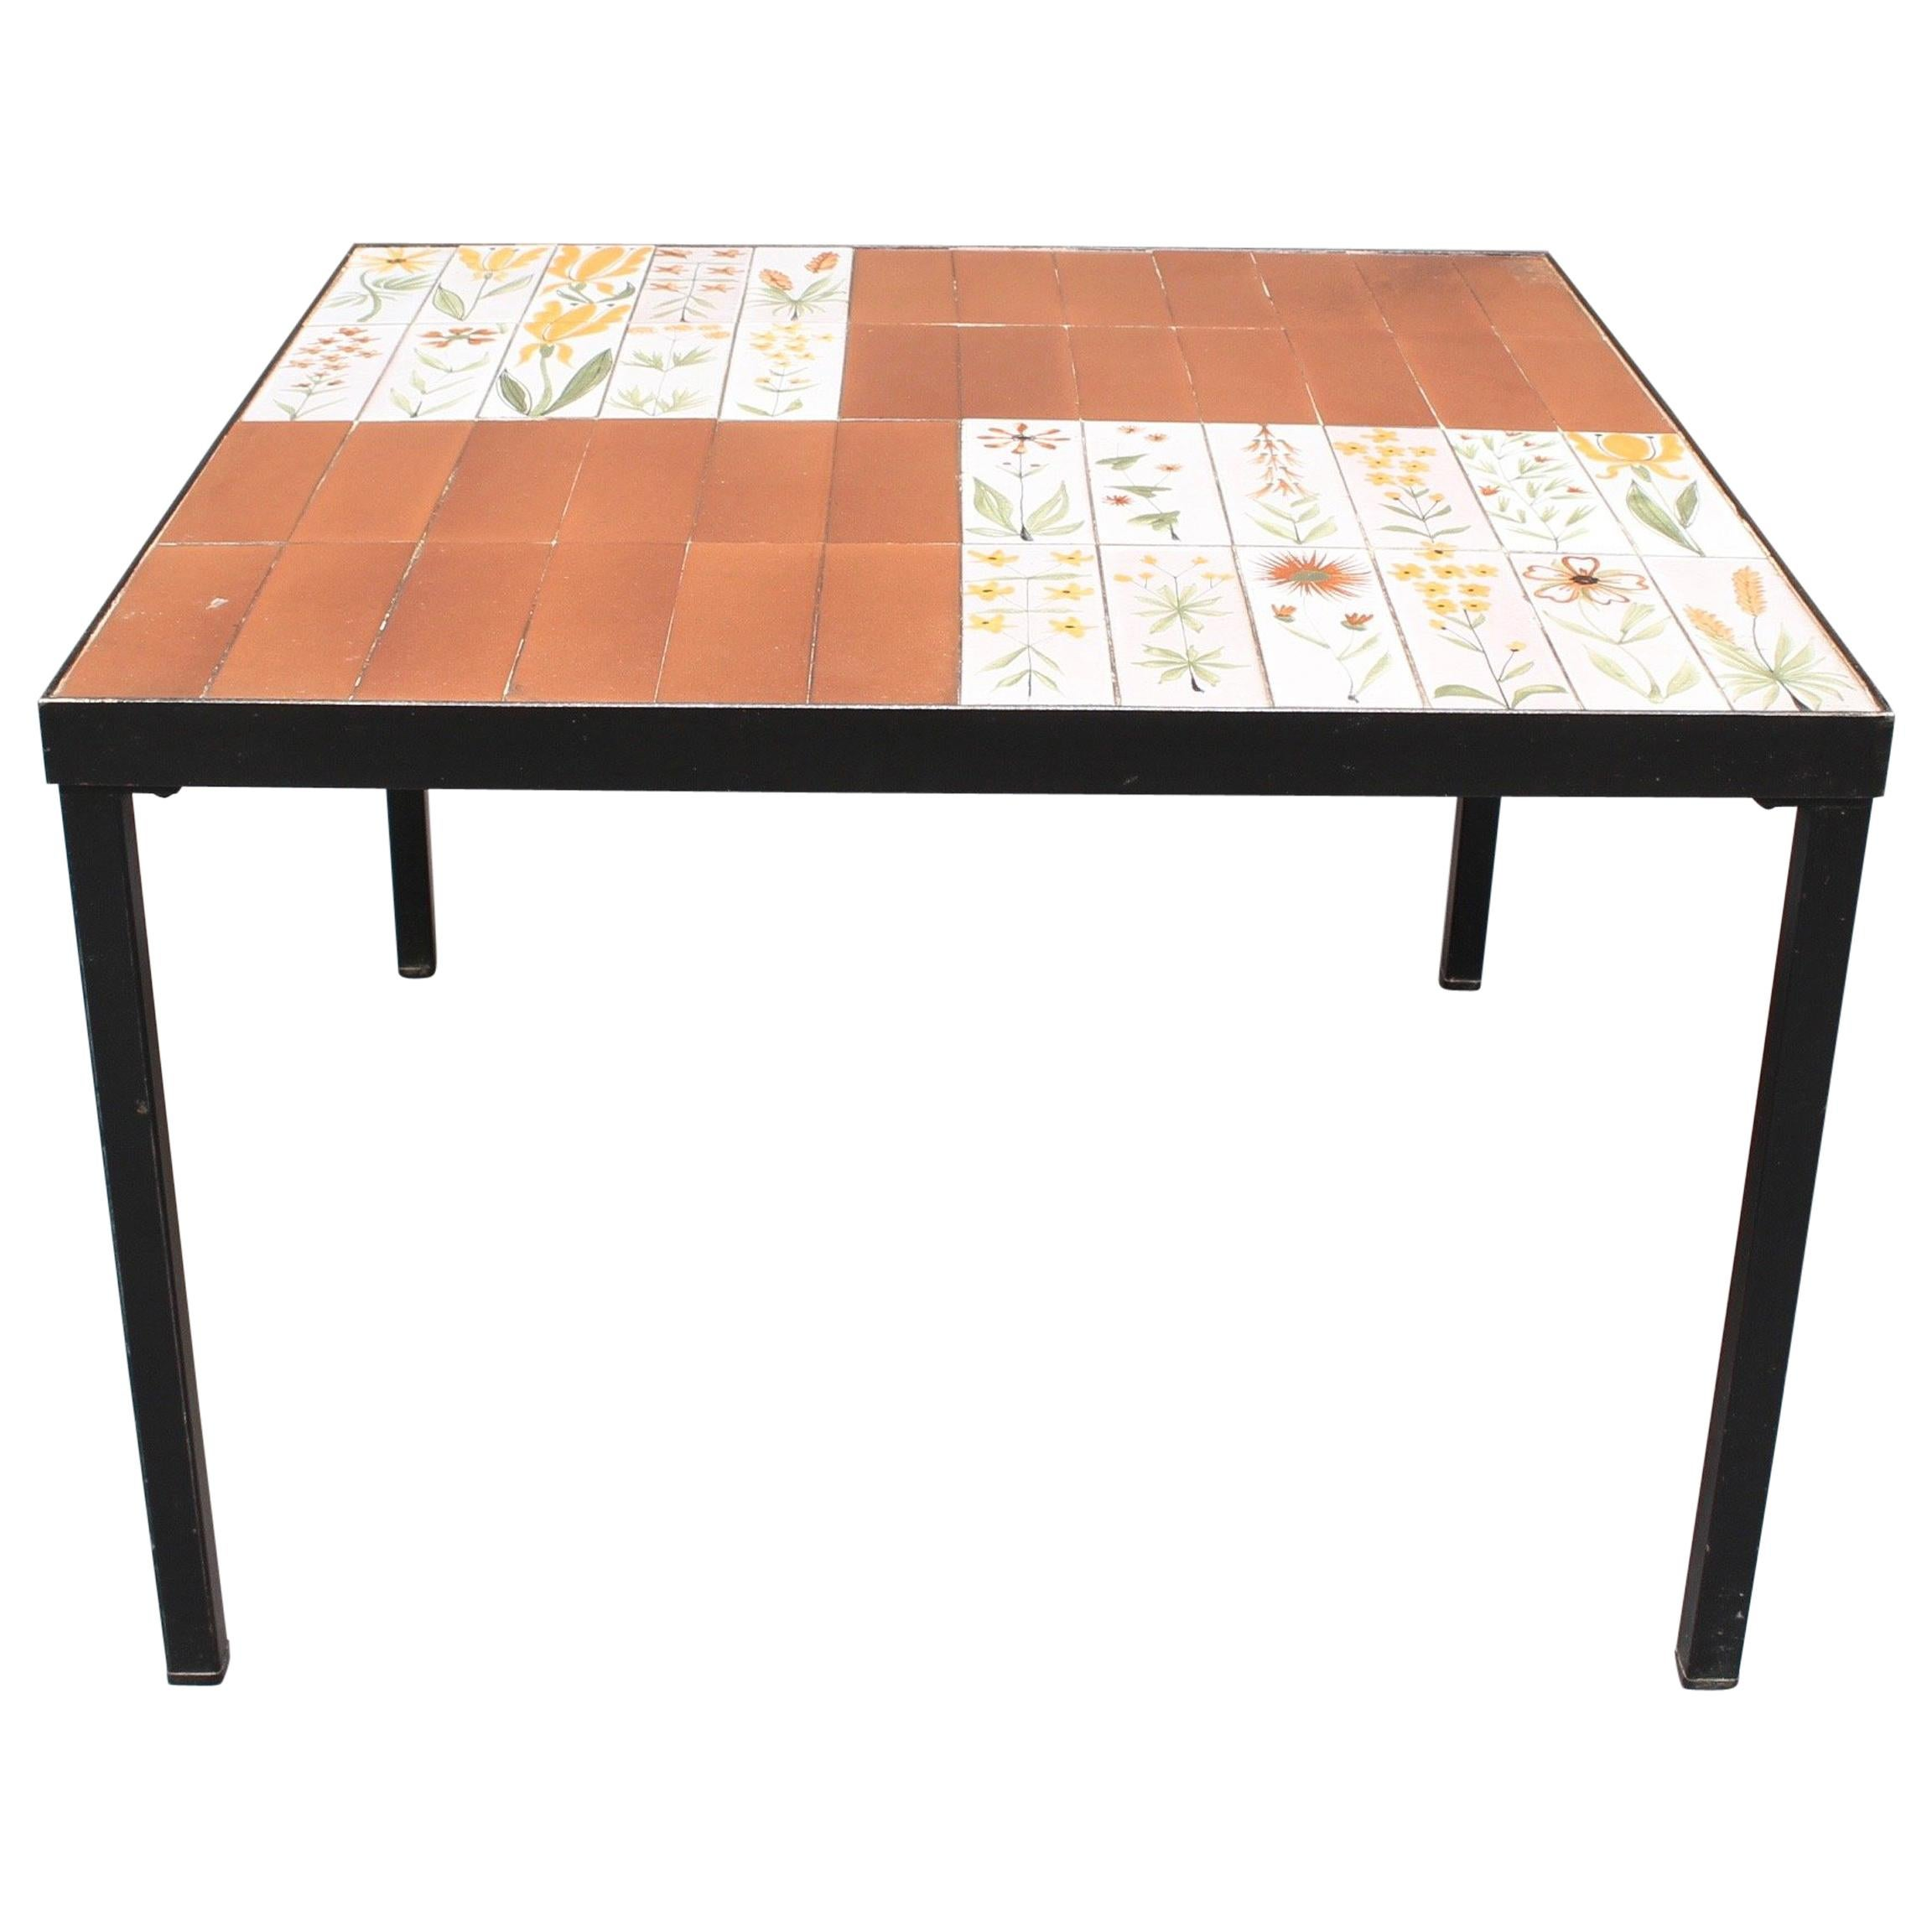 Coffee Table with Decorative Ceramic Tiles by Roger Capron, circa 1970s